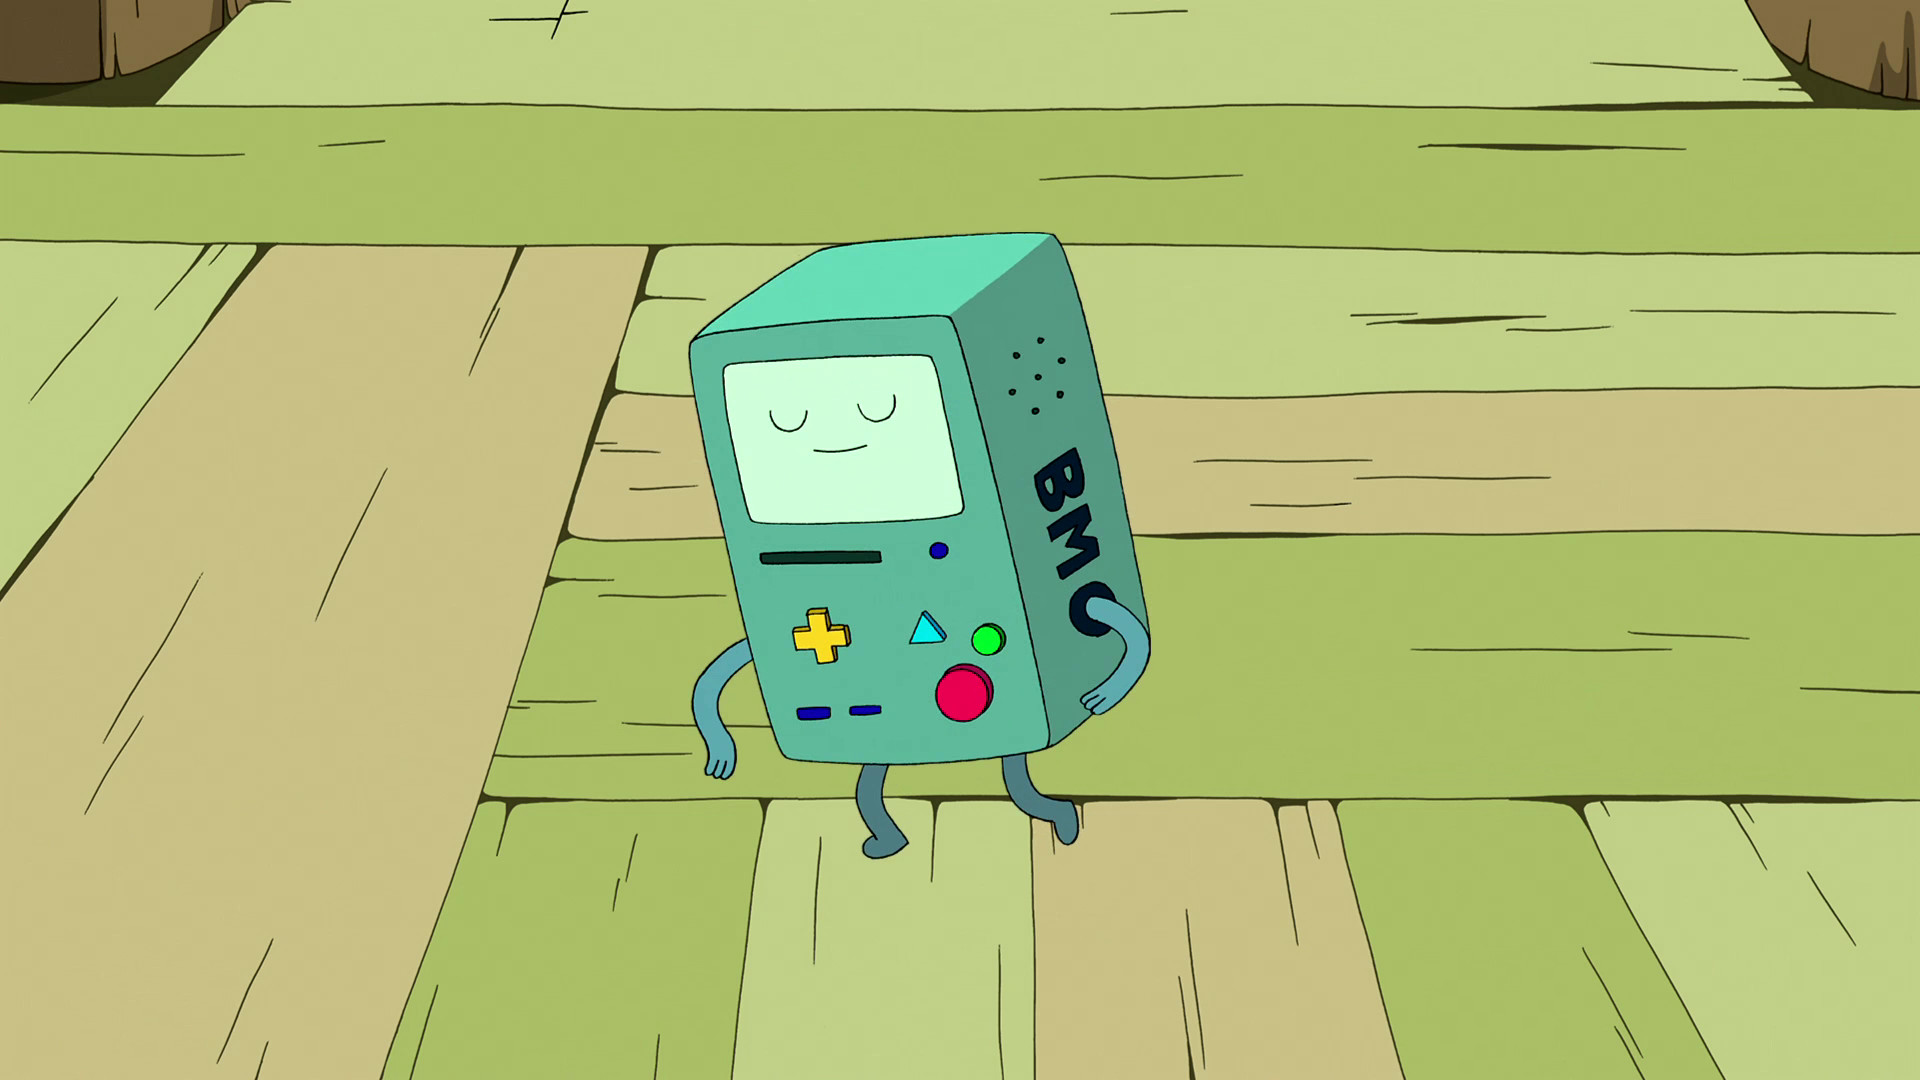 1920x1080 Bmo Backgrounds Free Download - wallpaper.wiki